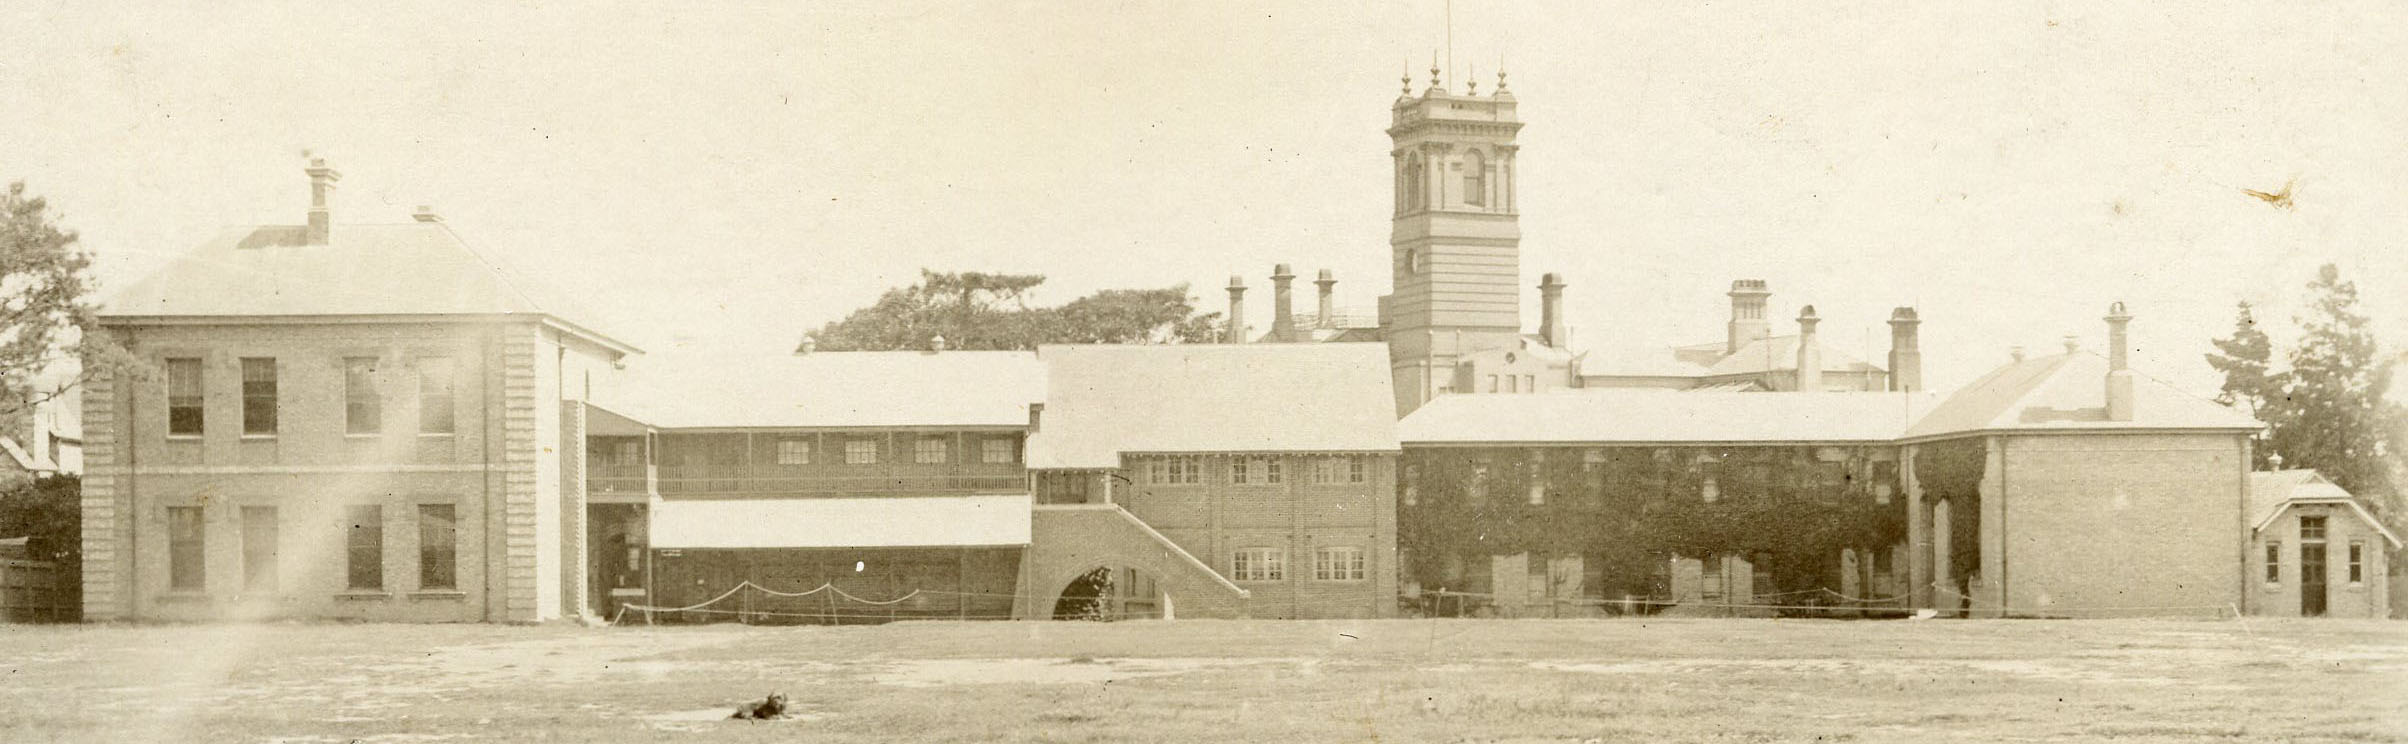 Banner photo - school buildings and oval 1910